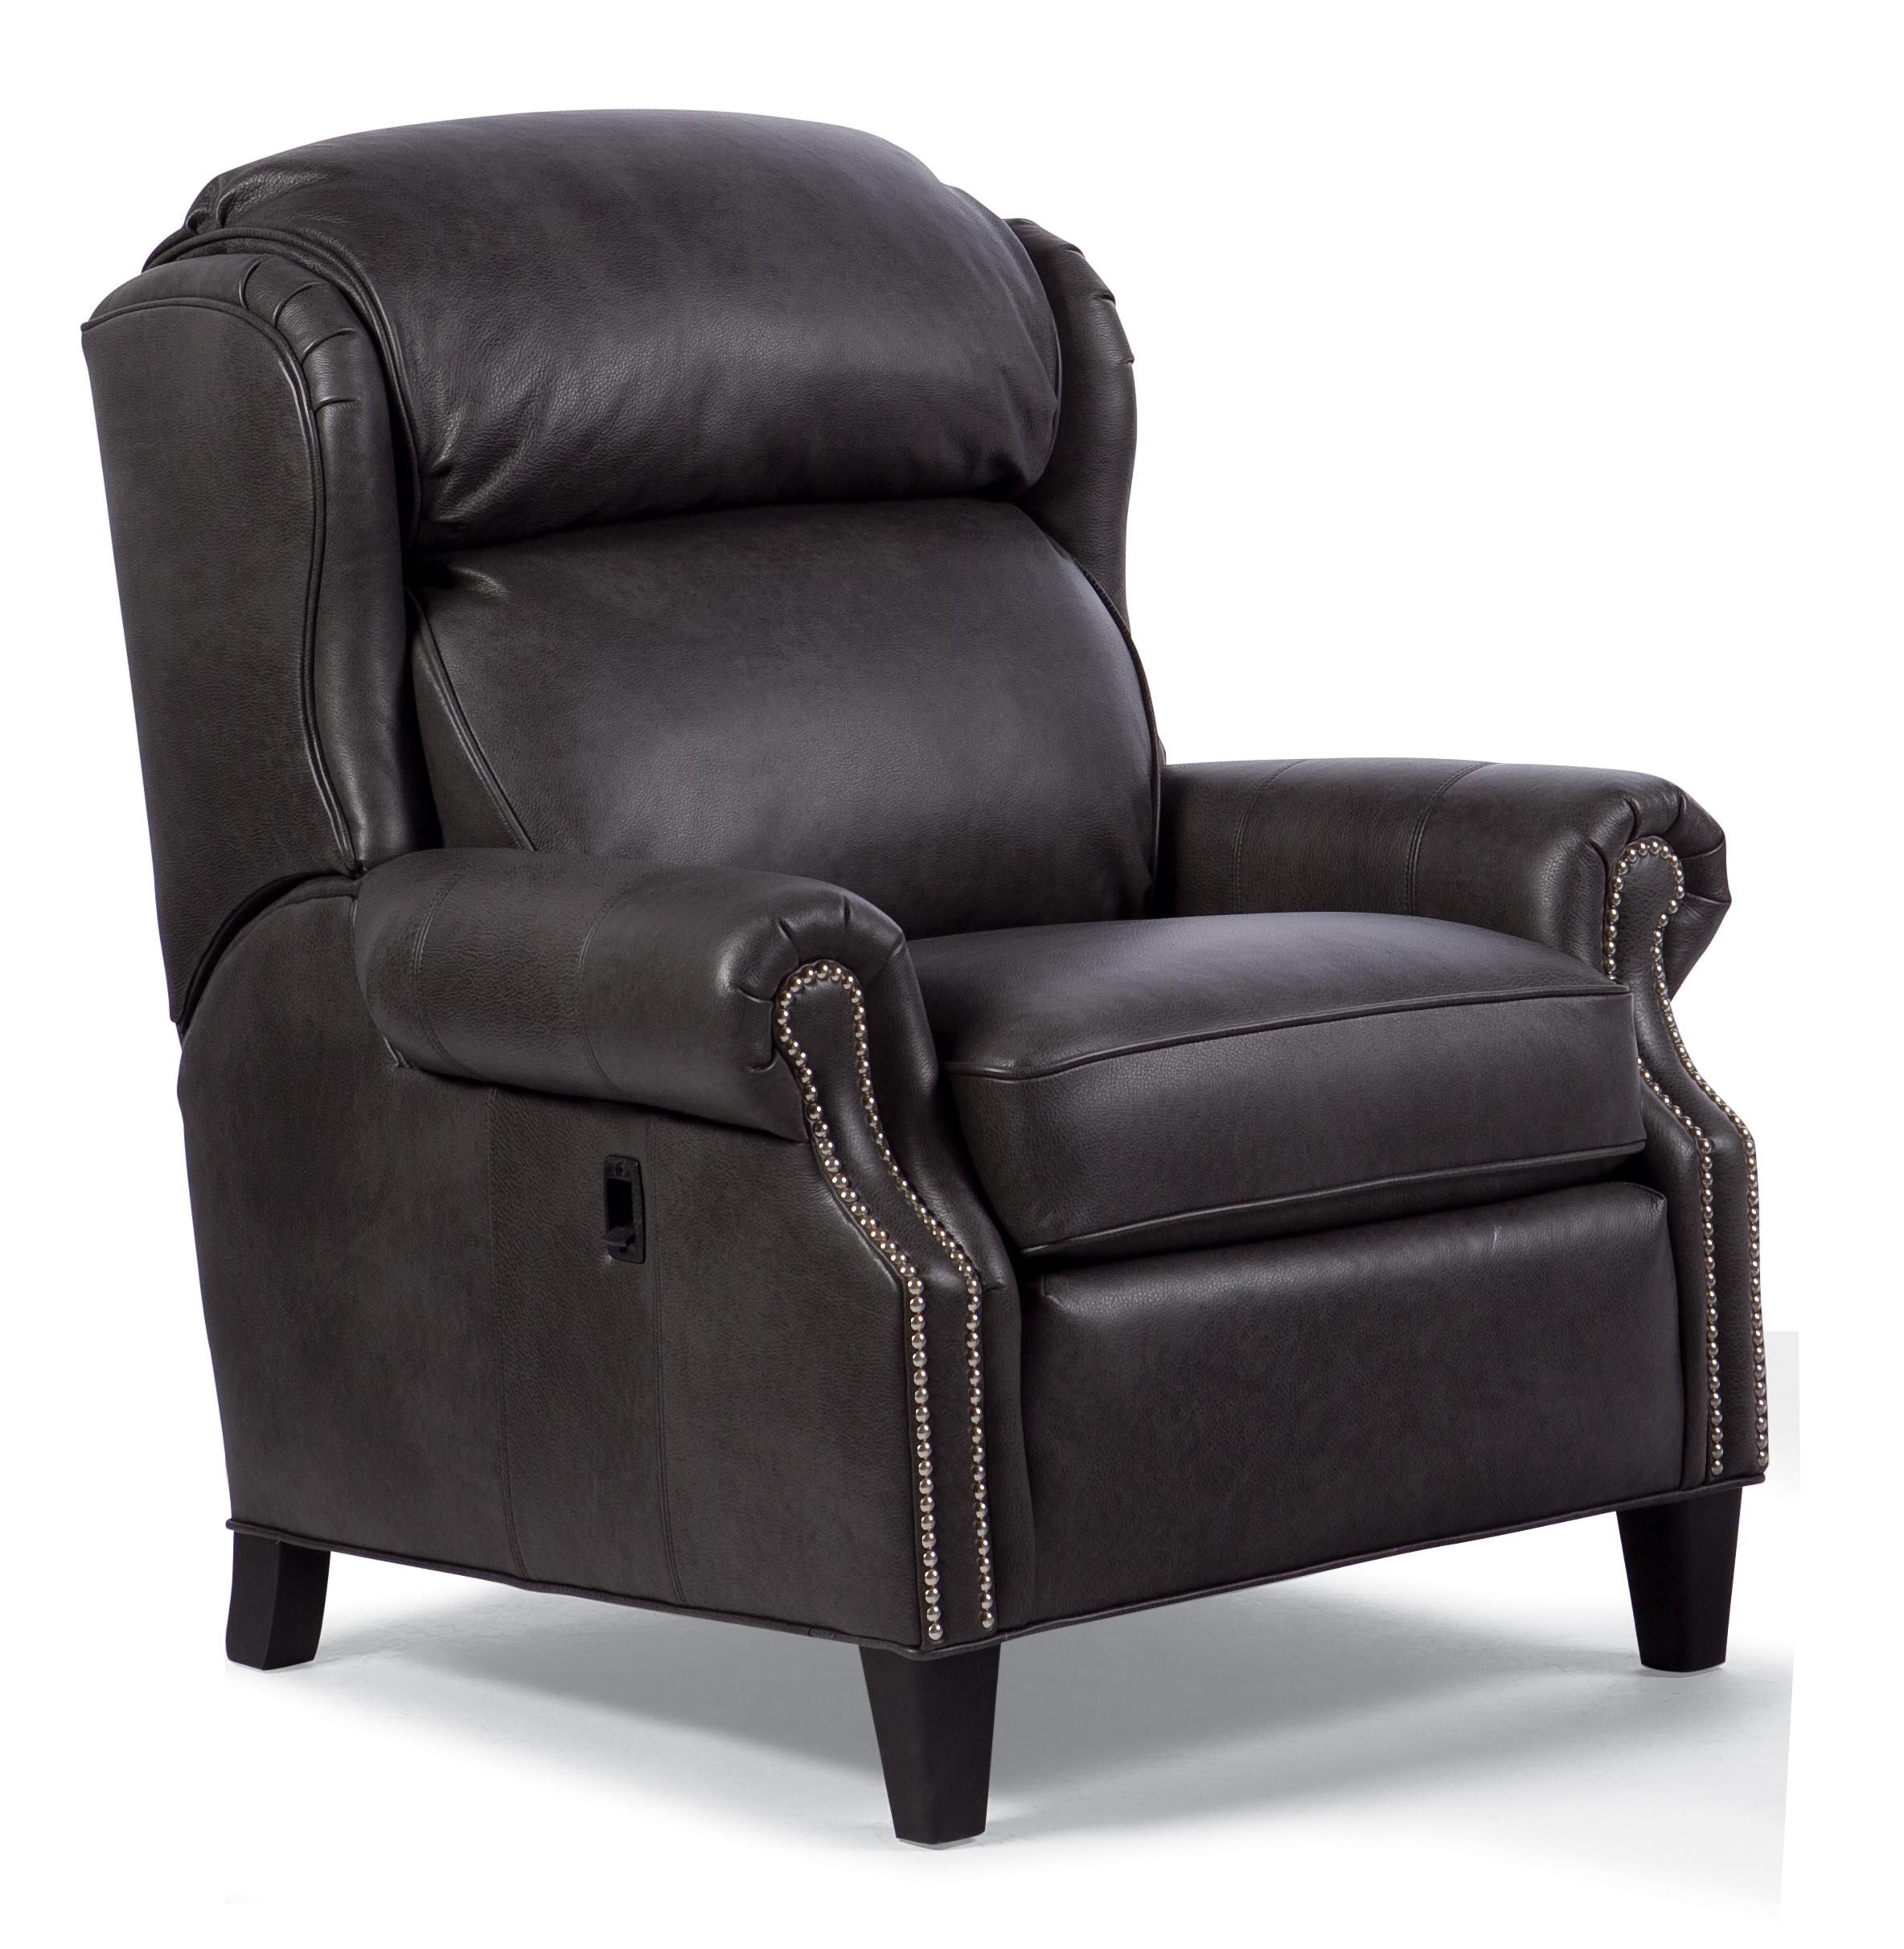 Best Recliners Recliner By Smith Brothers Living Room 640 x 480